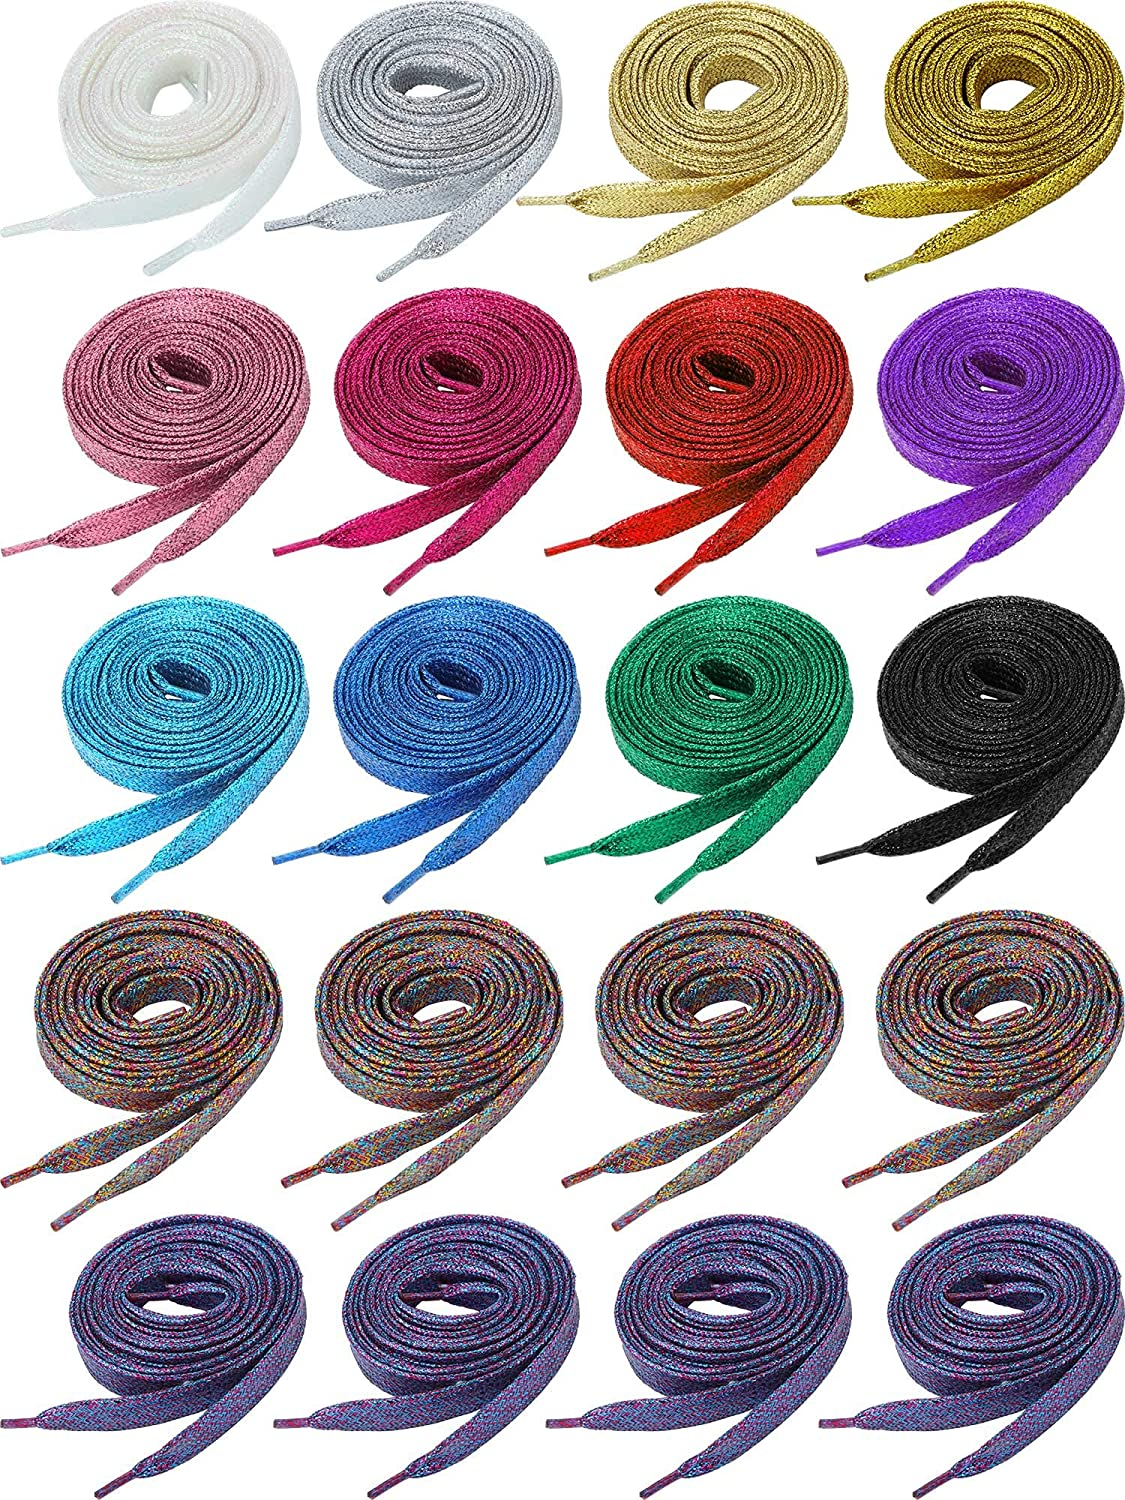 20 Pairs Glitter Flat Shoelaces Solid Colors Shoe Laces Replacement for Team Sneakers